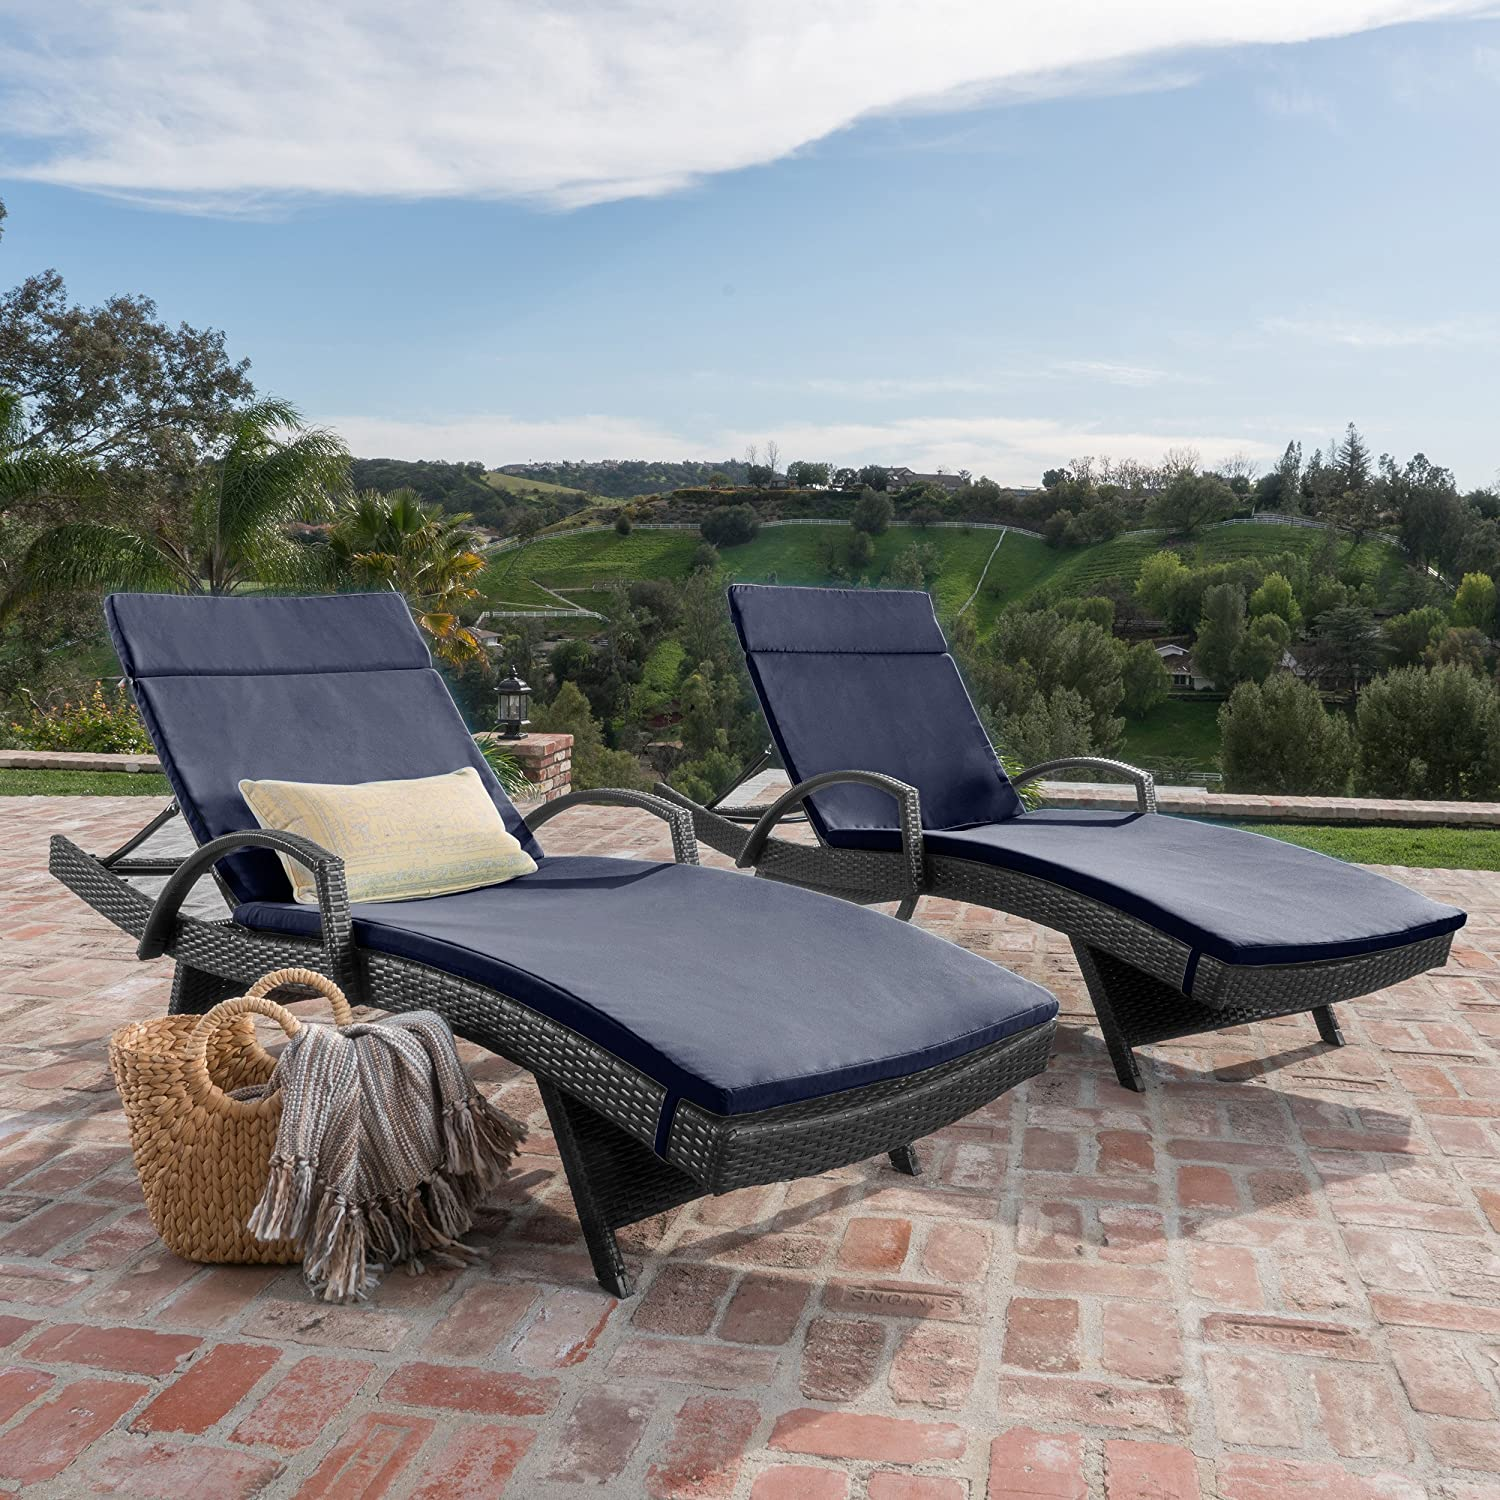 Amazon Com Olivia Patio Furniture Outdoor Wicker Chaise Lounge Chair With Arms W Water Resistant Cushions Set Of 2 Navy Blue Garden Outdoor